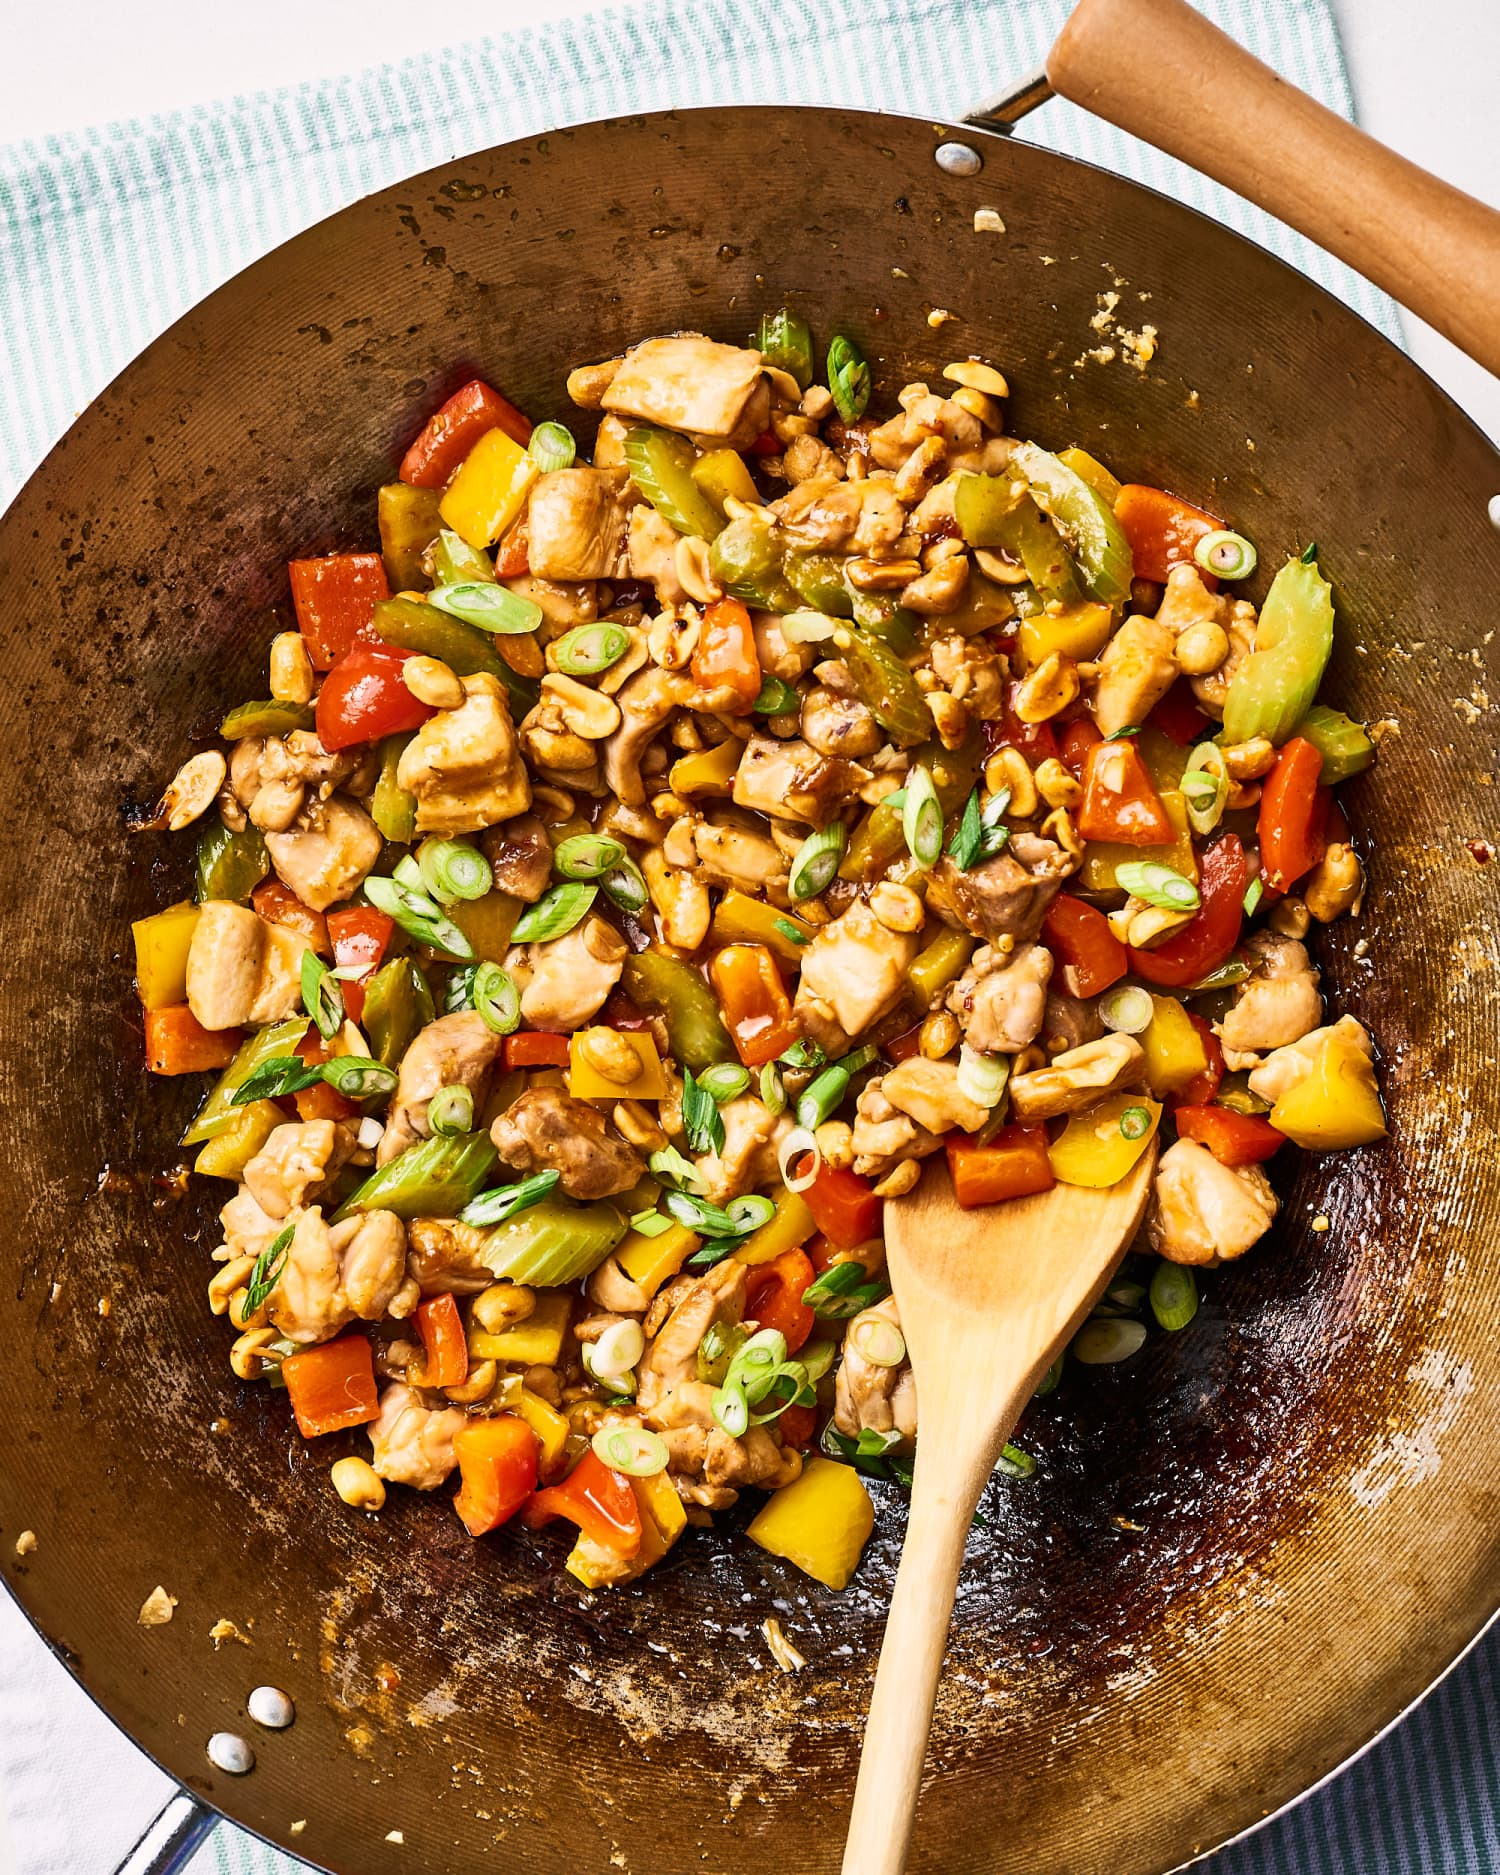 How To Make Kung Pao Chicken That Tastes Better than Takeout | Kitchn